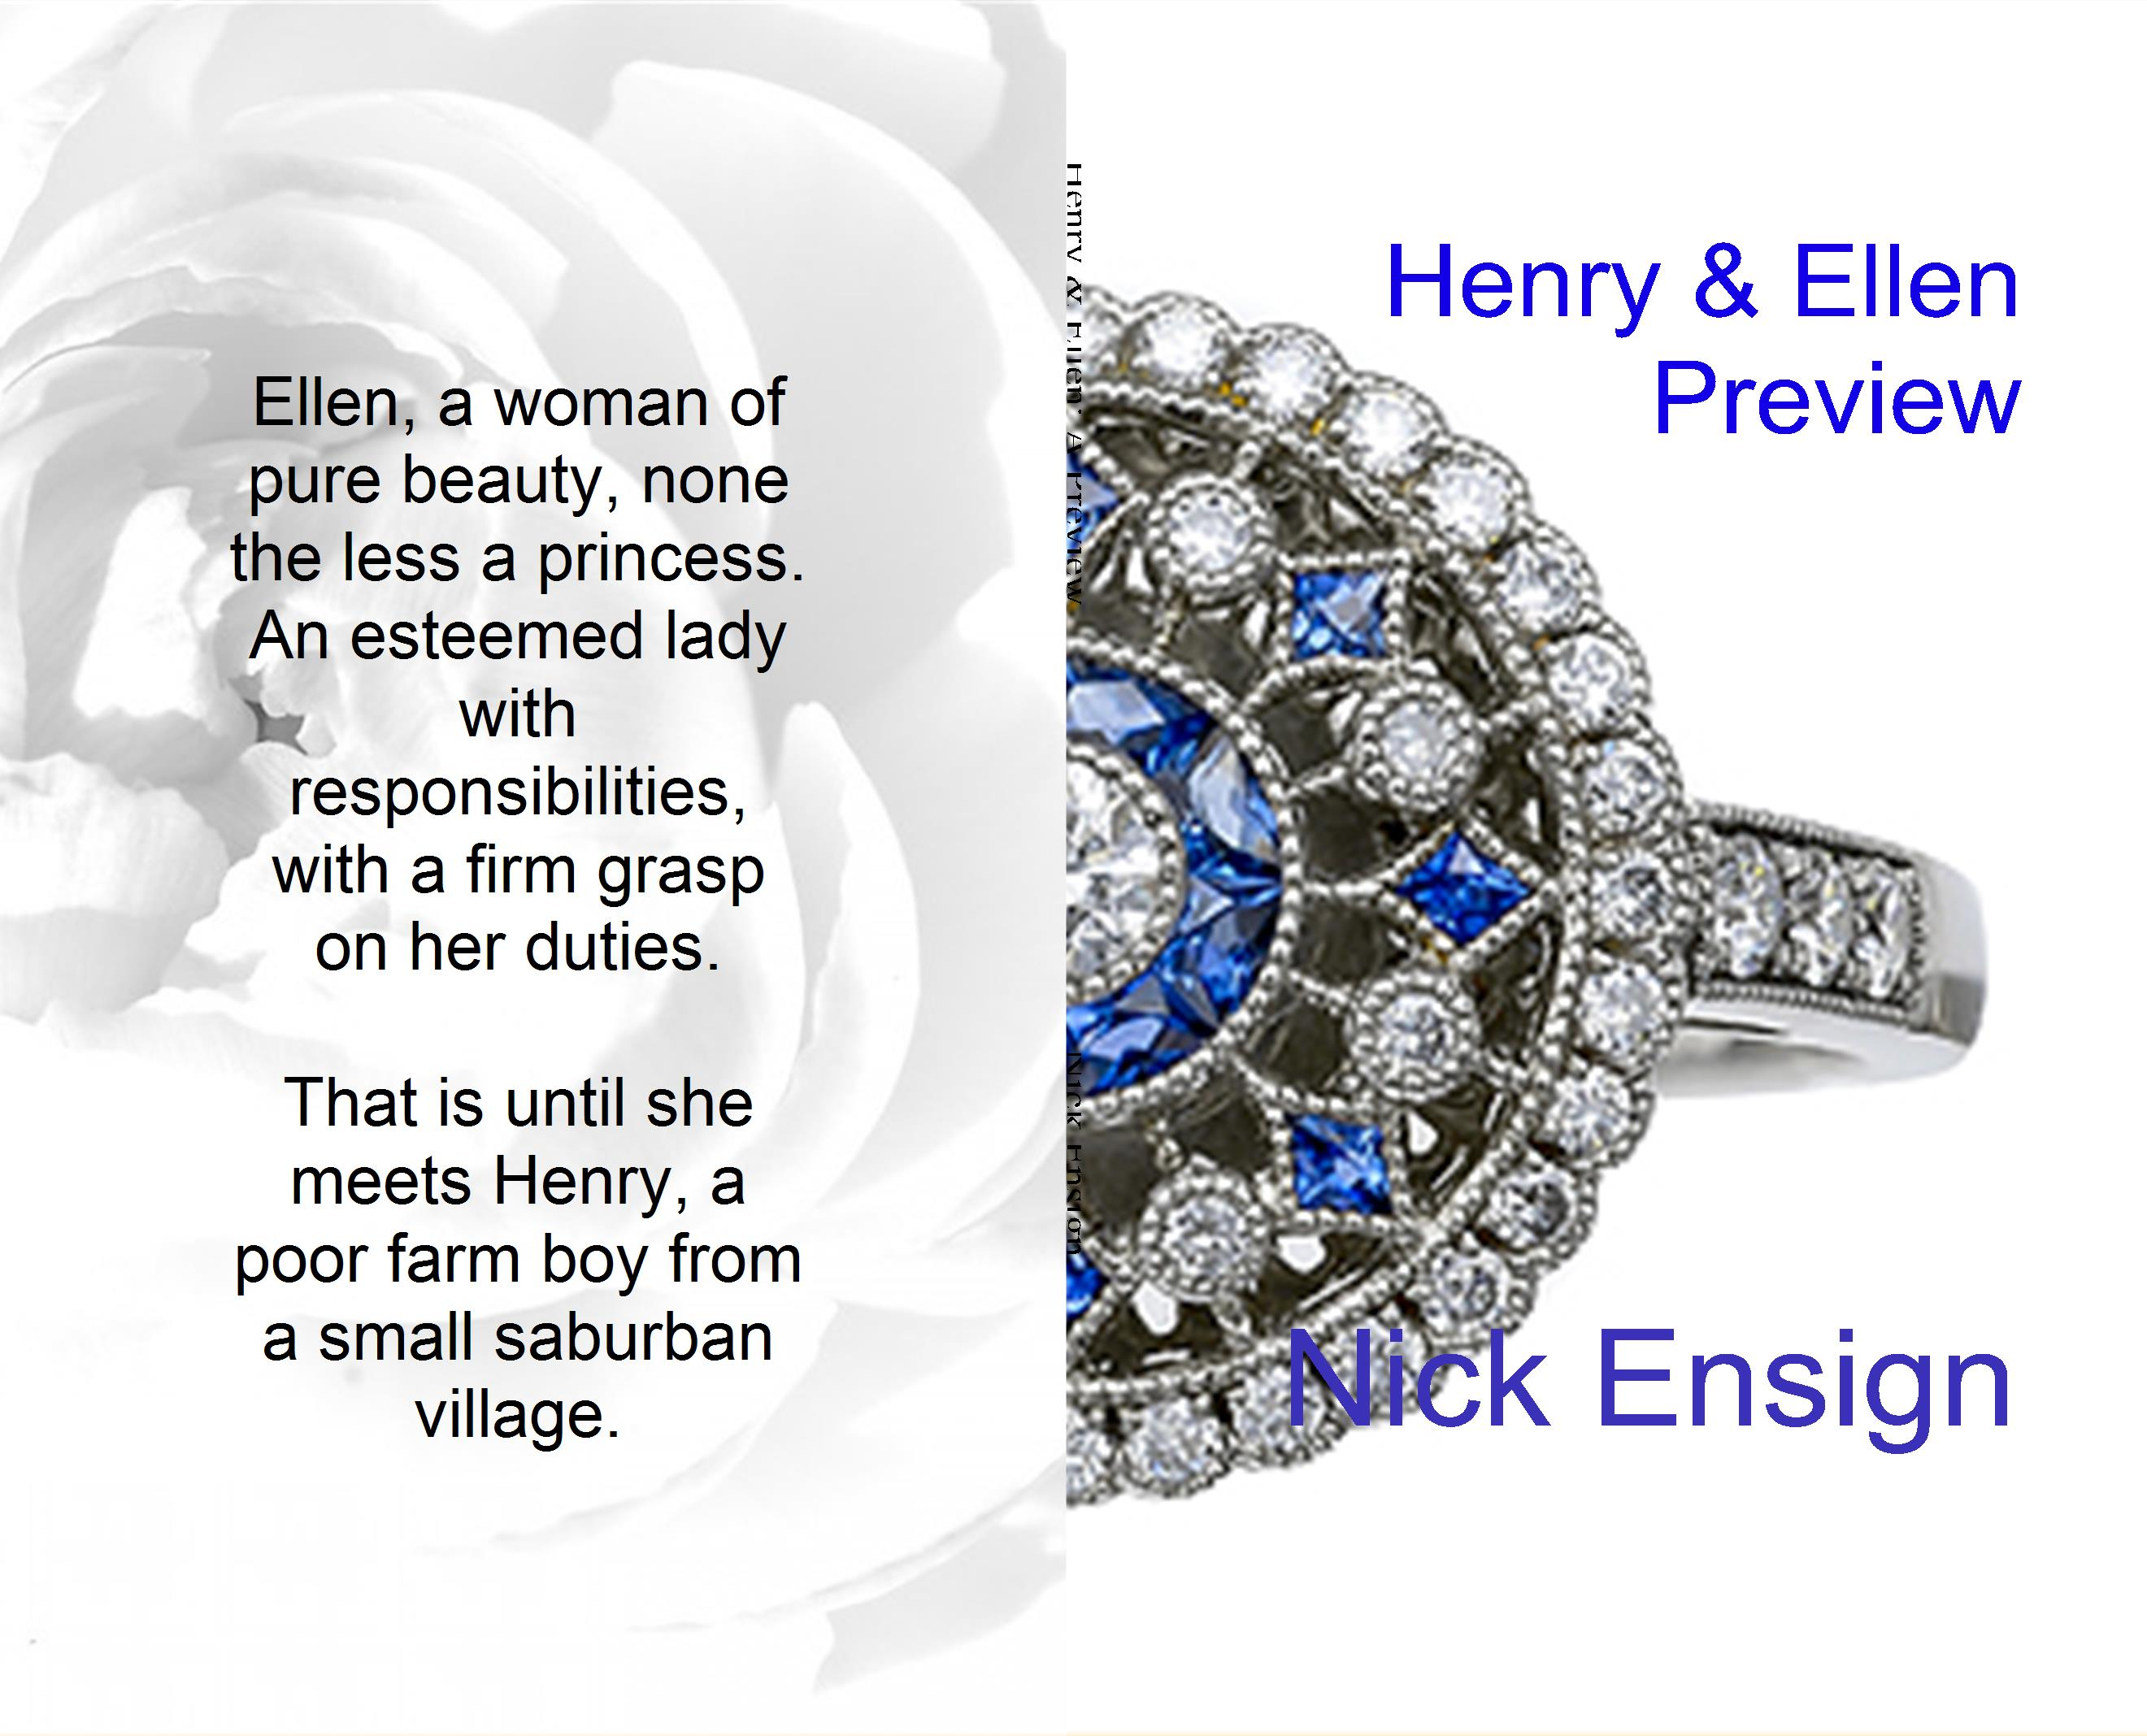 Henry & Ellen Preview cover image